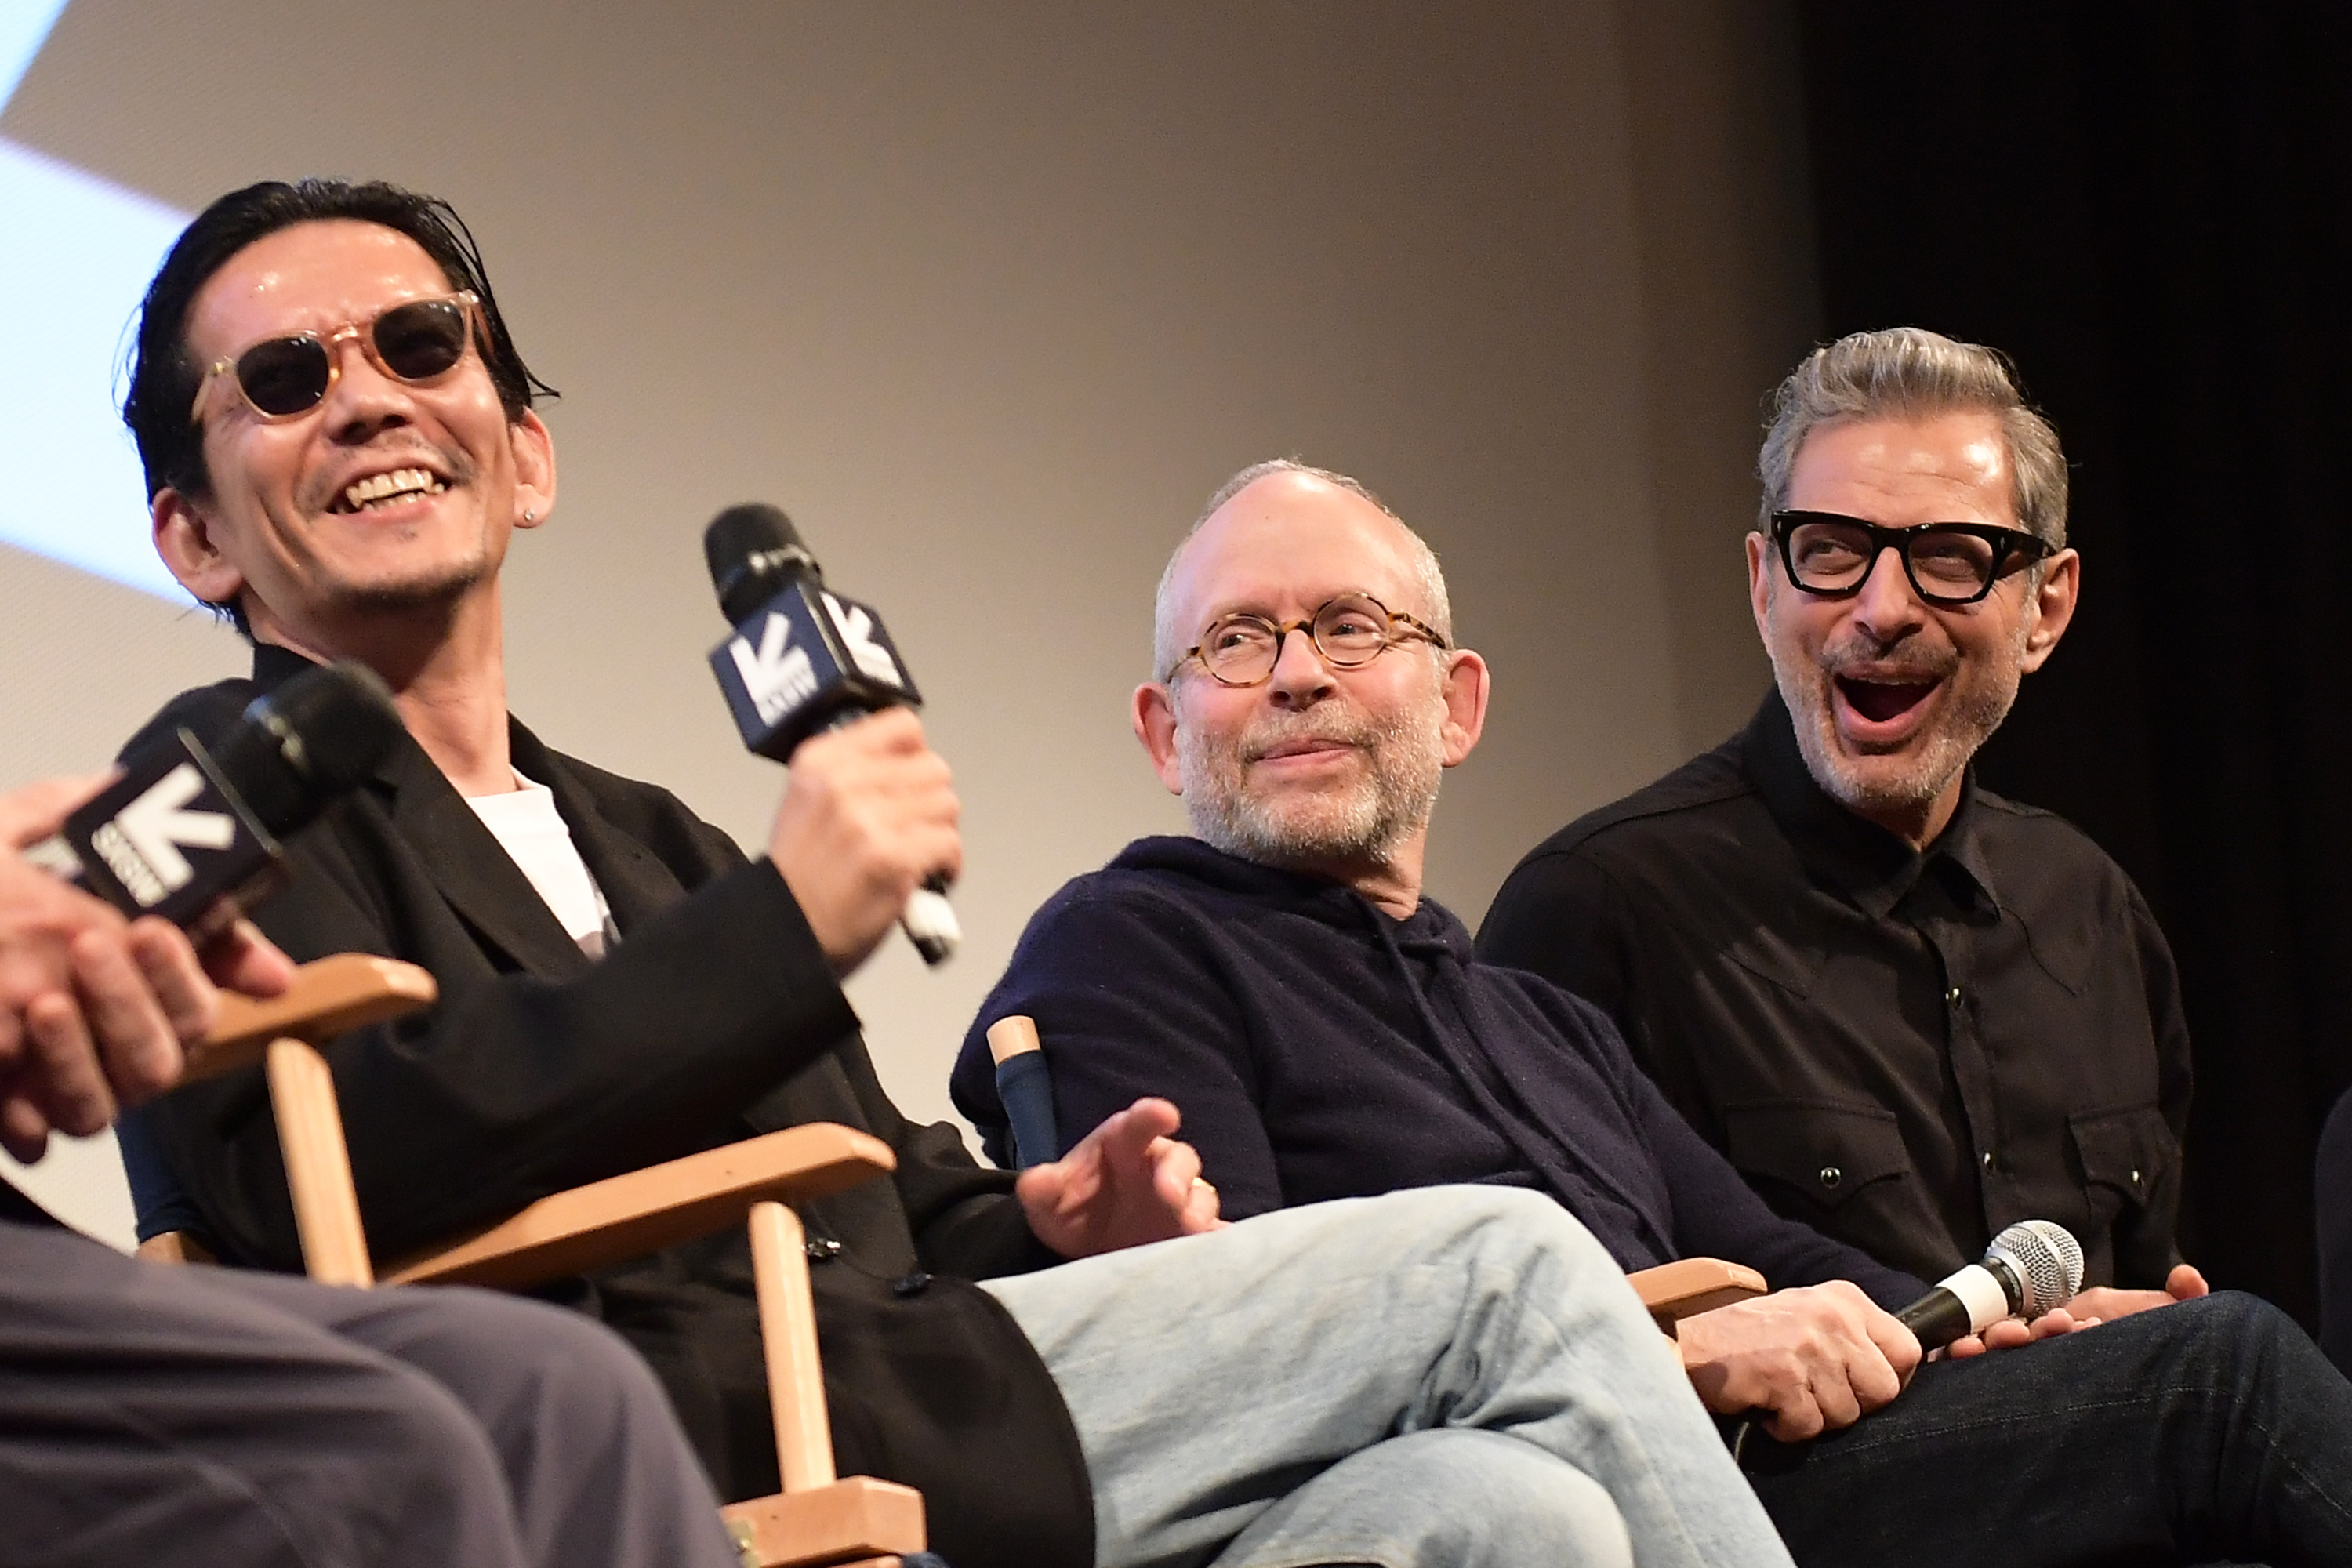 """Kunichi Nomura, Bob Balaban, and Jeff Goldblum attend the """"Isle of Dogs"""" Premiere - 2018 SXSW Conference and Festivals at Paramount Theatre on March 17, 2018 in Austin, Texas. (Photo by Matt Winkelmeyer/Getty Images for SXSW)"""